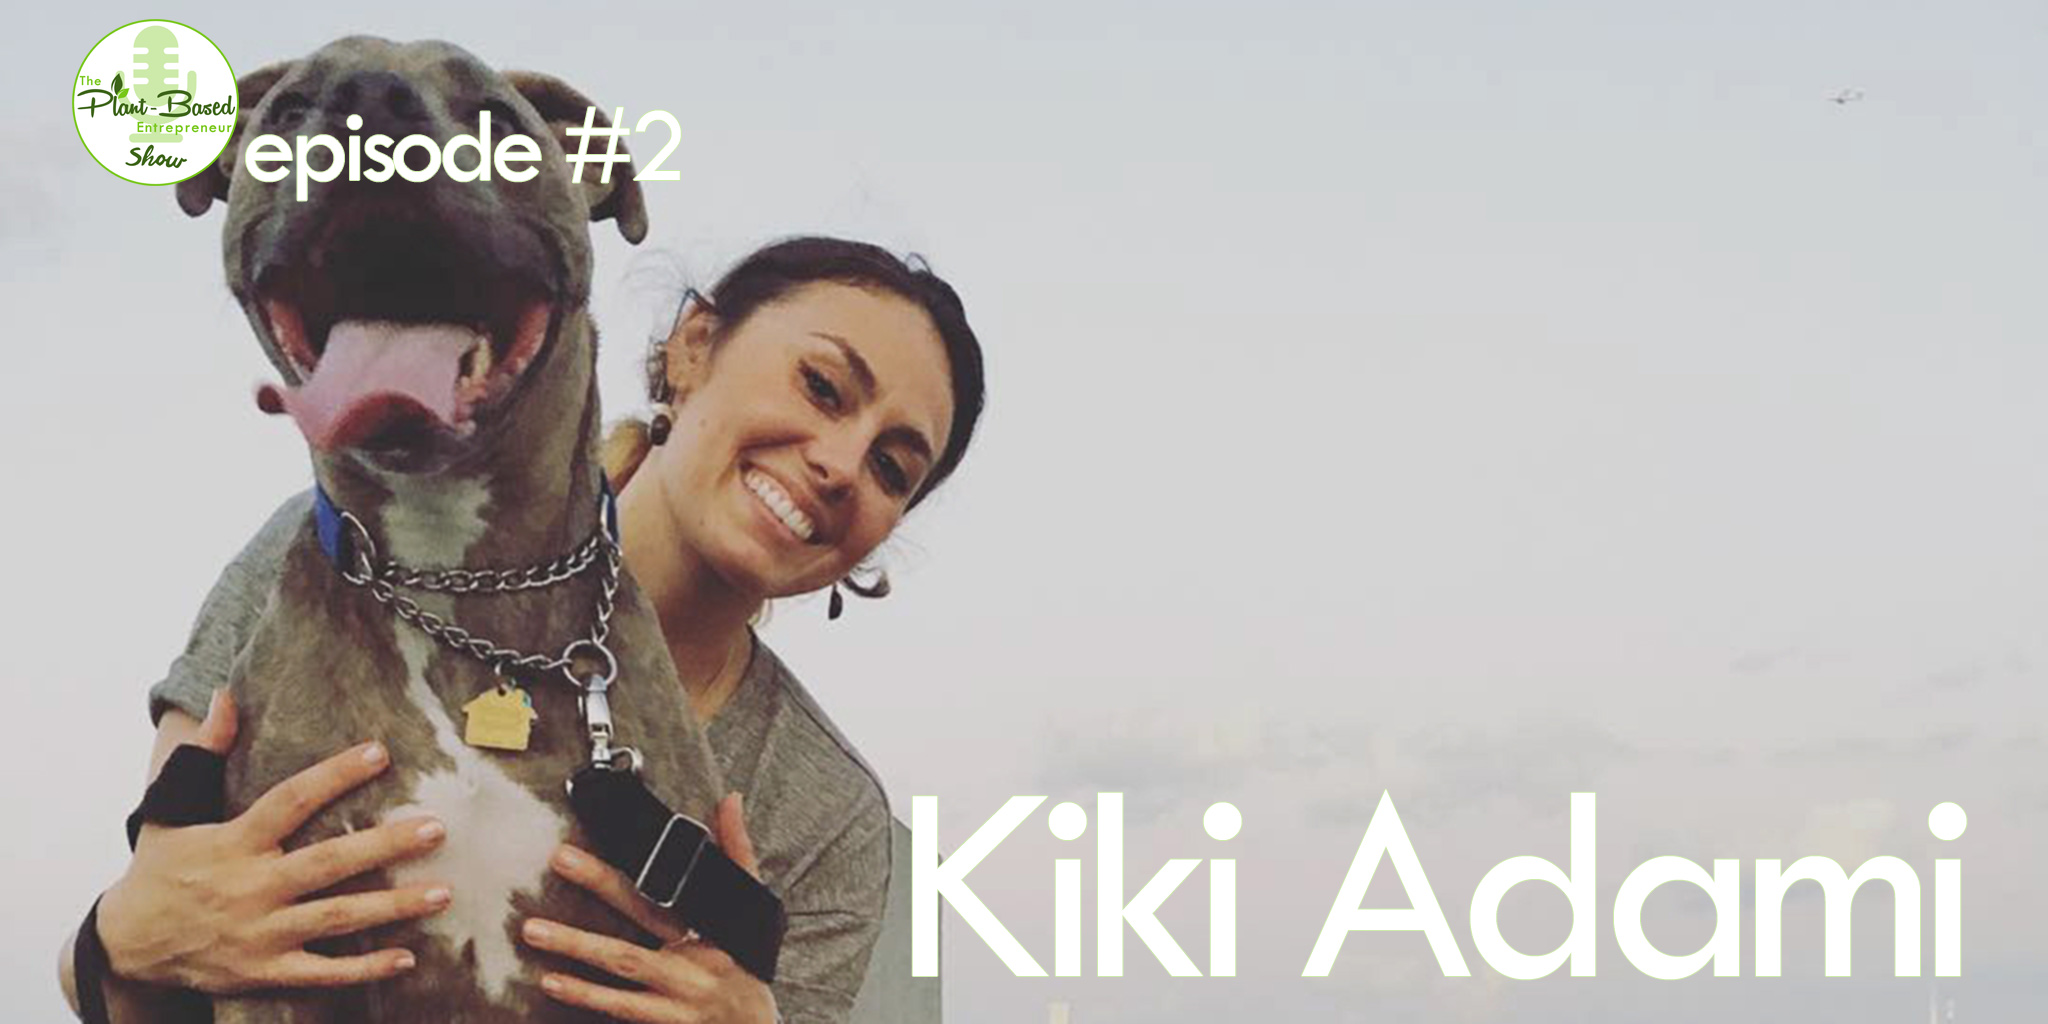 Episode #2 - Kiki Adami